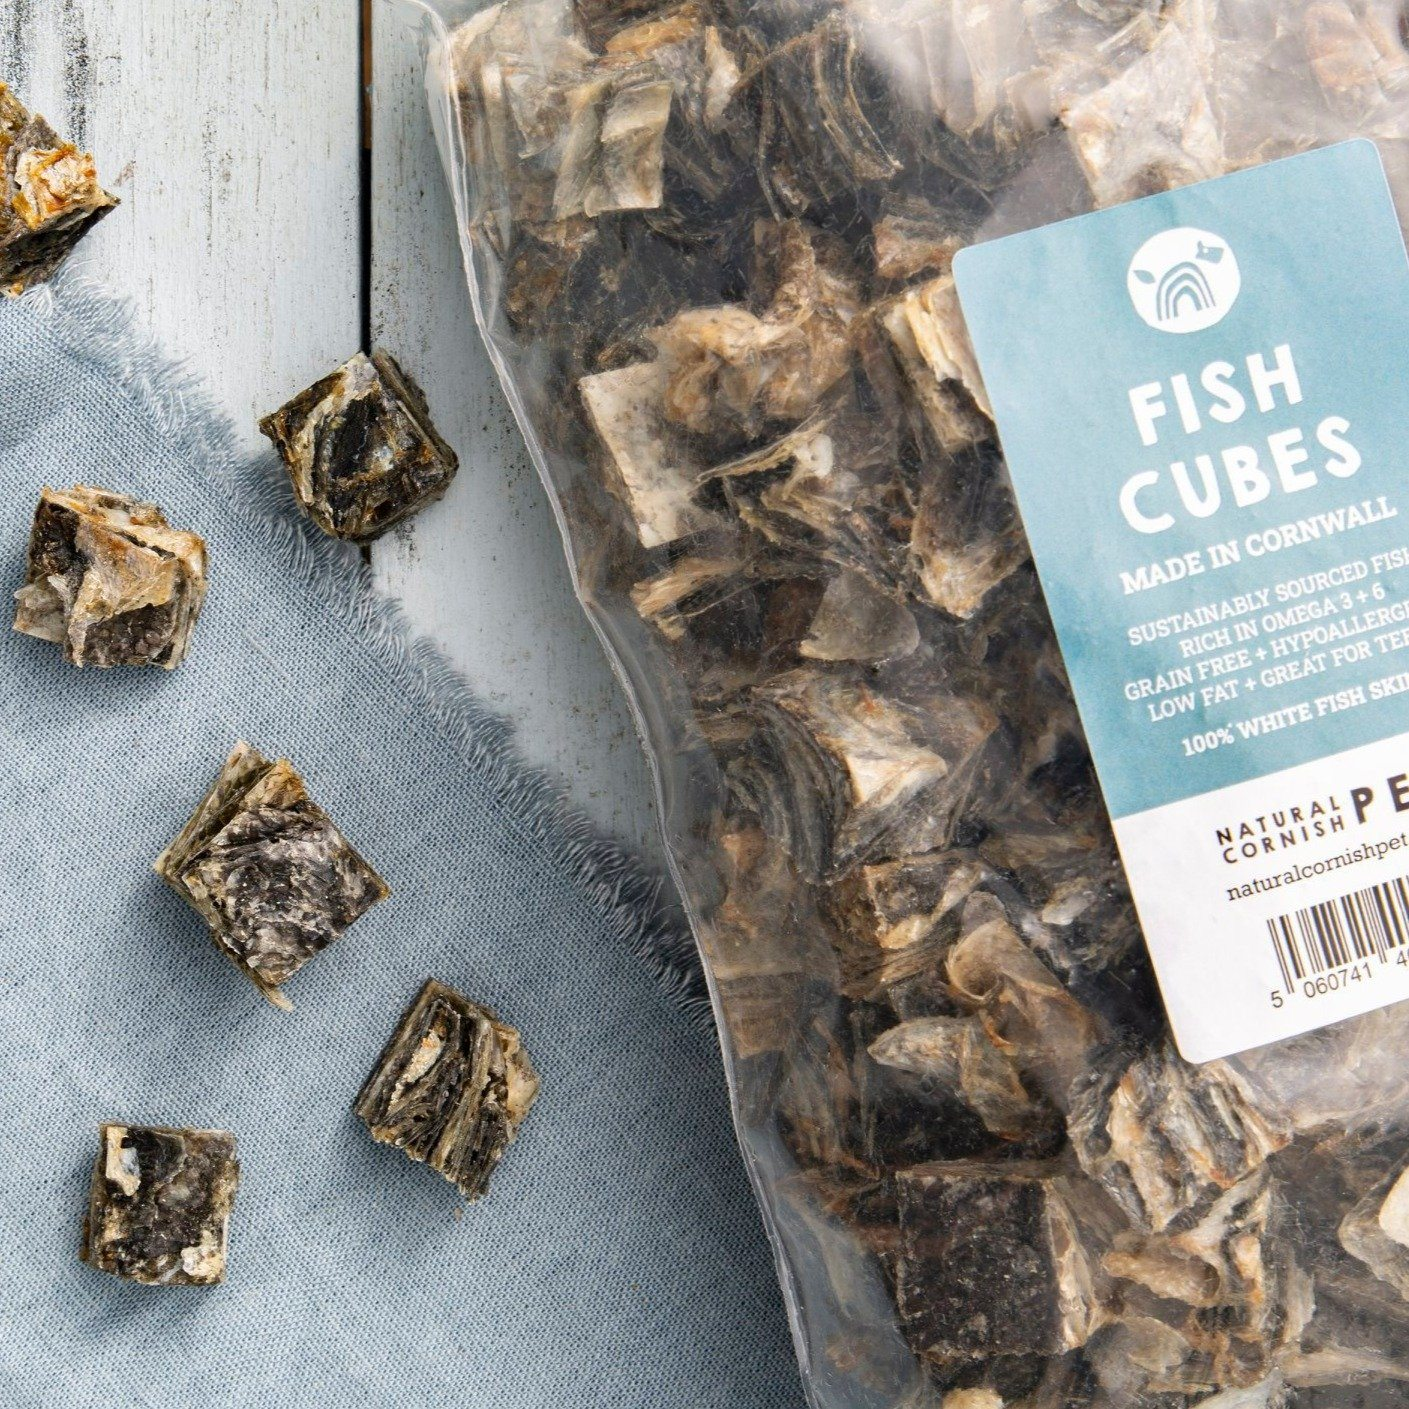 Cornish Fish Cubes Dog Treats Natural Cornish Pet